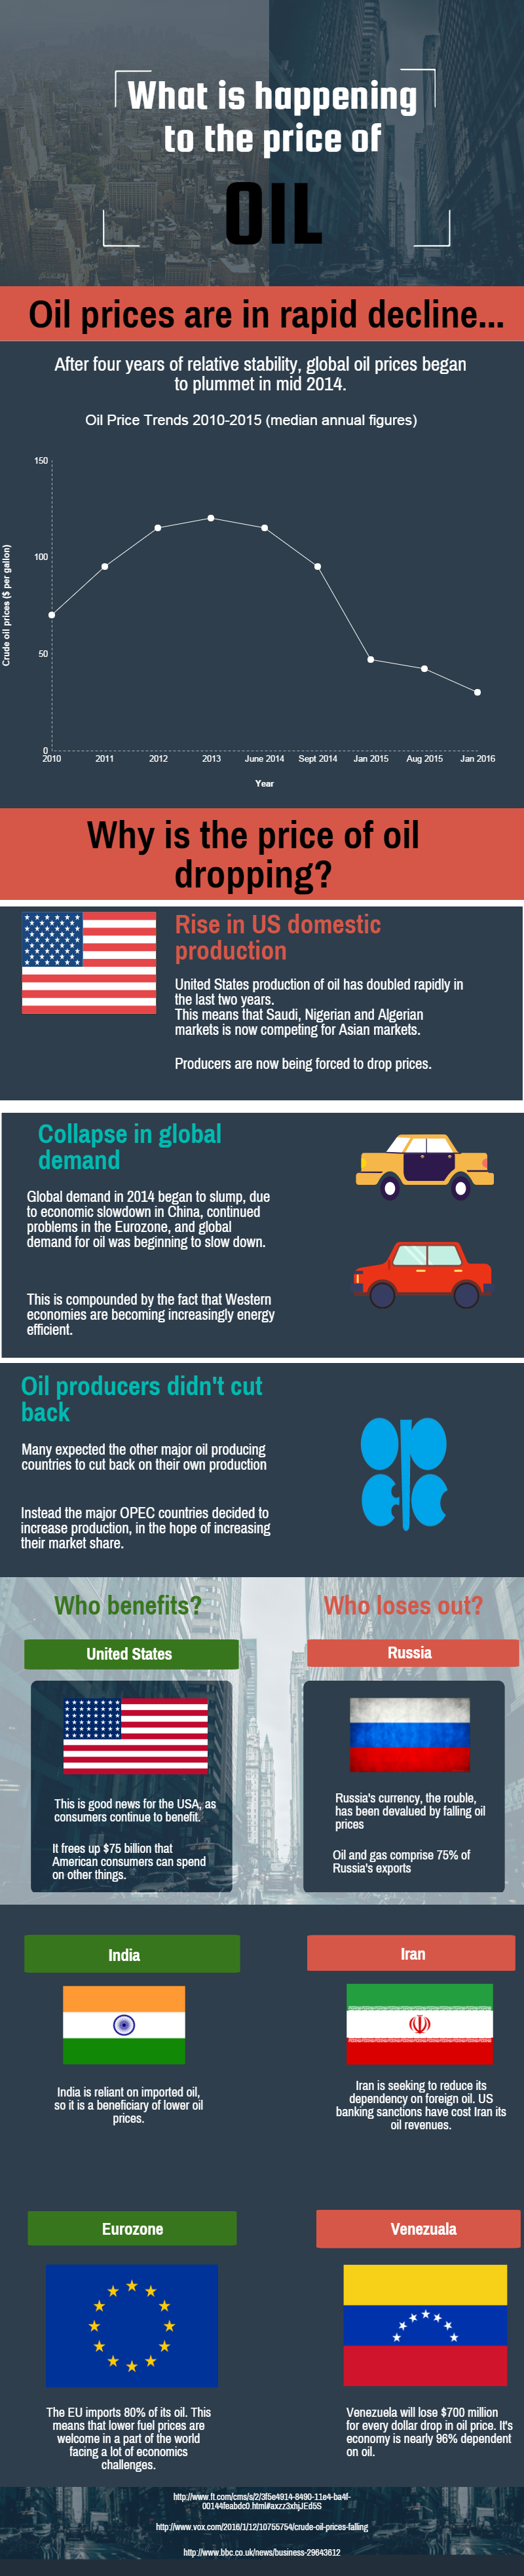 What is happening to the price of oil?